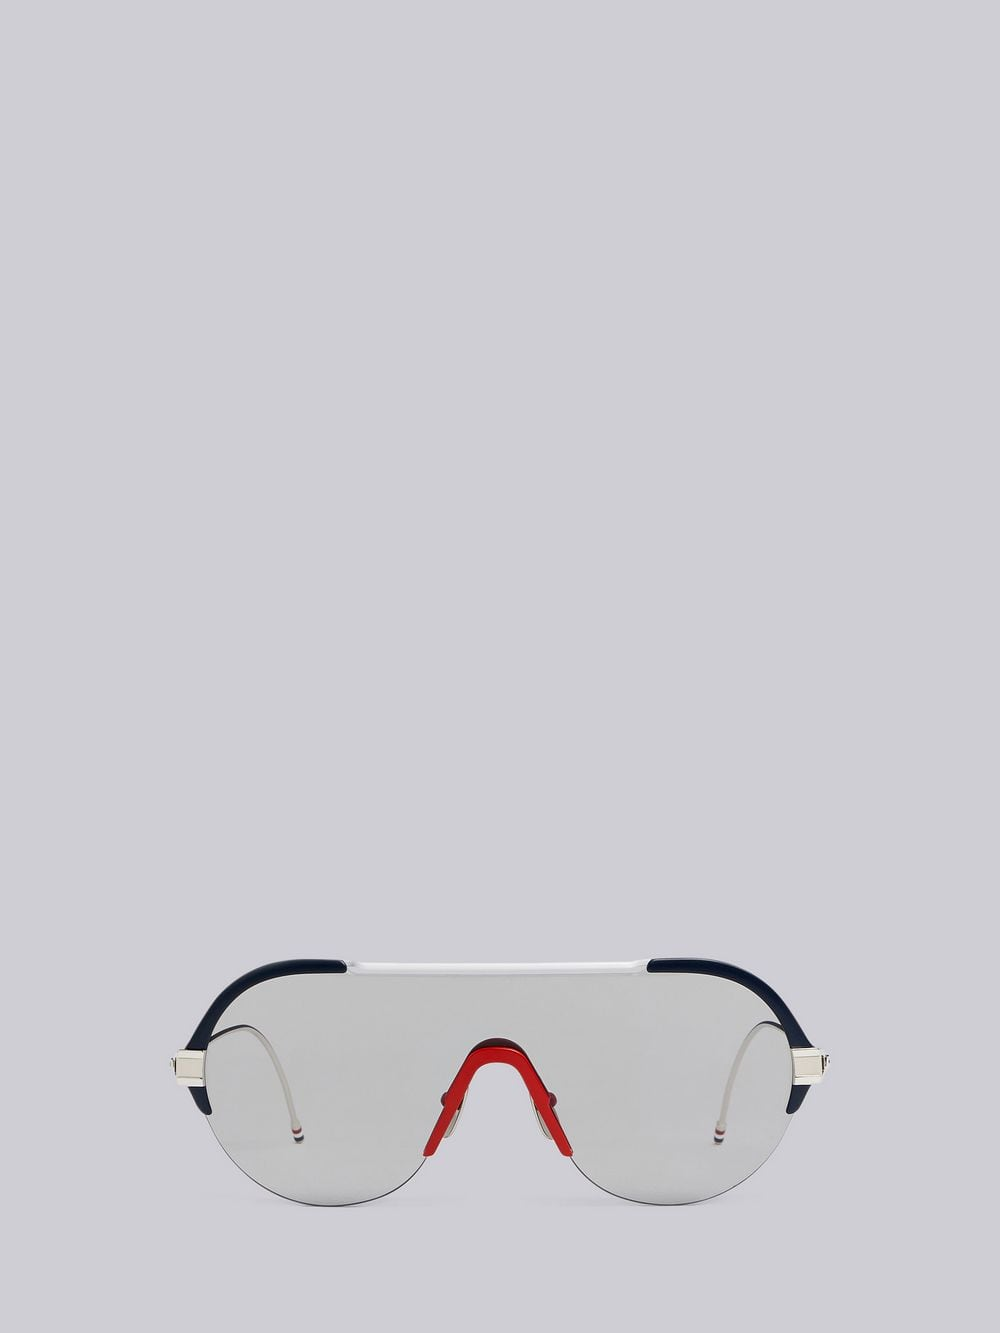 Navy, White, Red & Silver Sunglasses.jpg